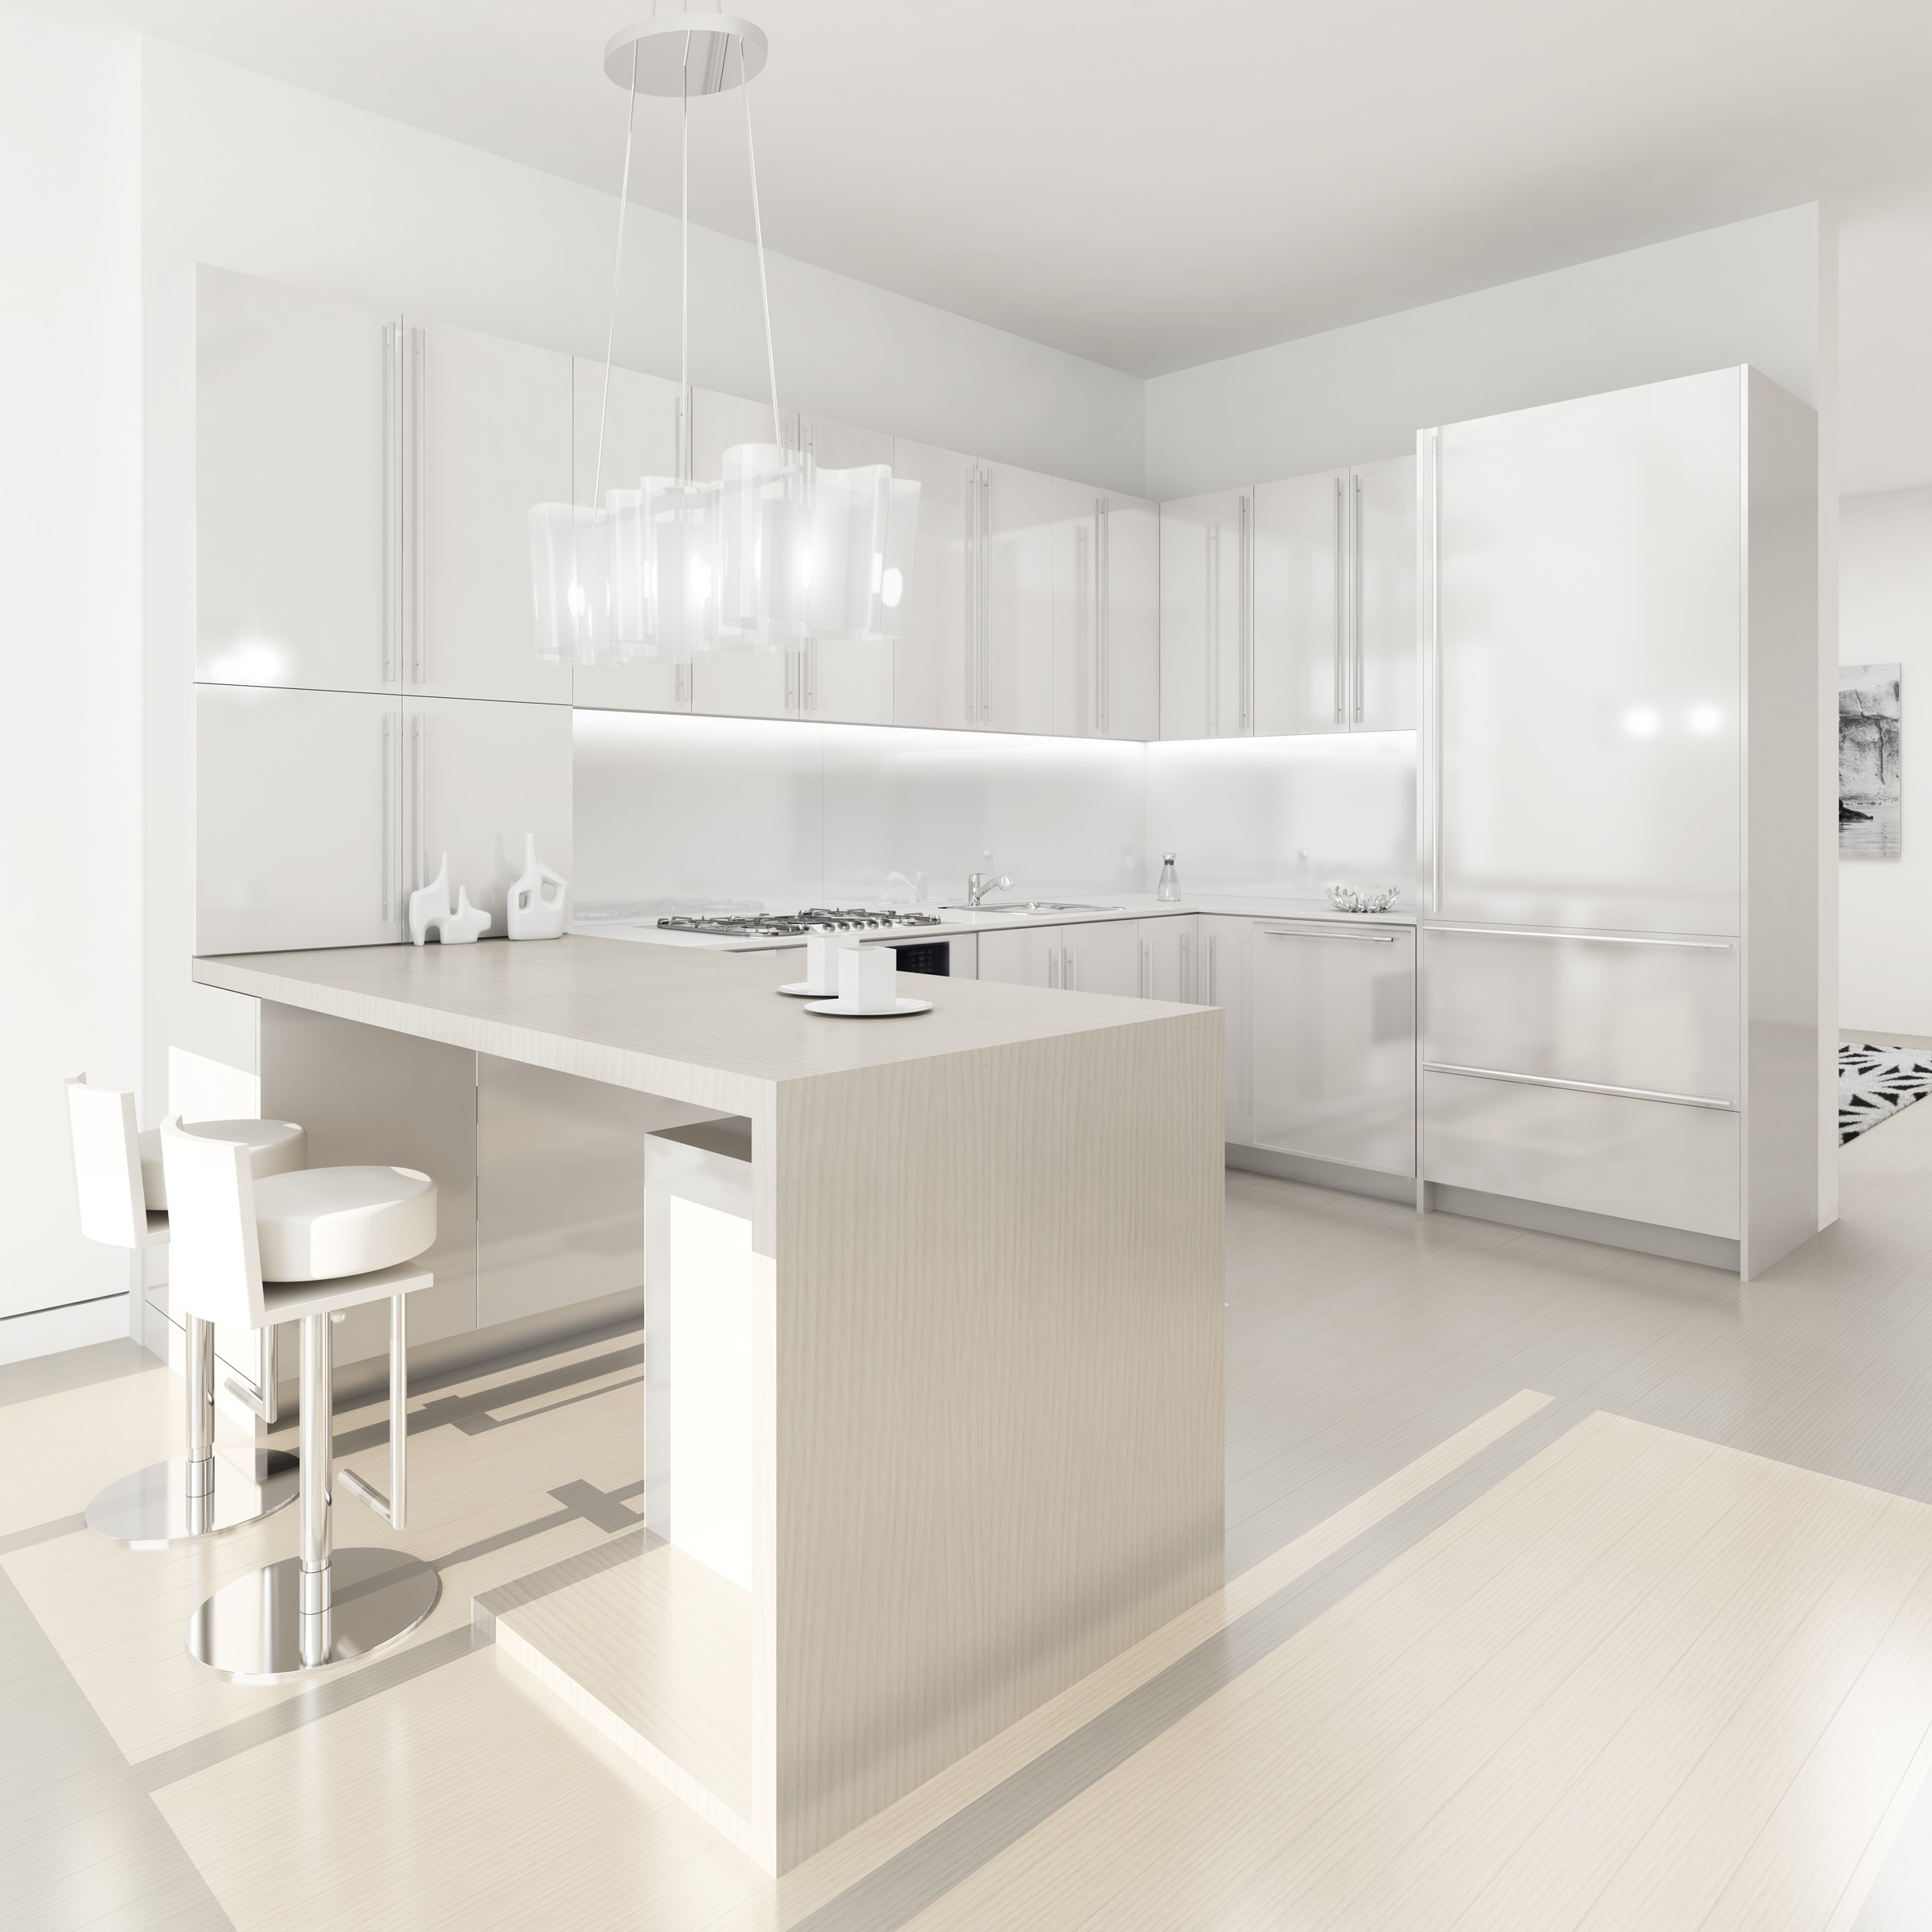 kitchen interior design white my white kitchen s mr barr 608